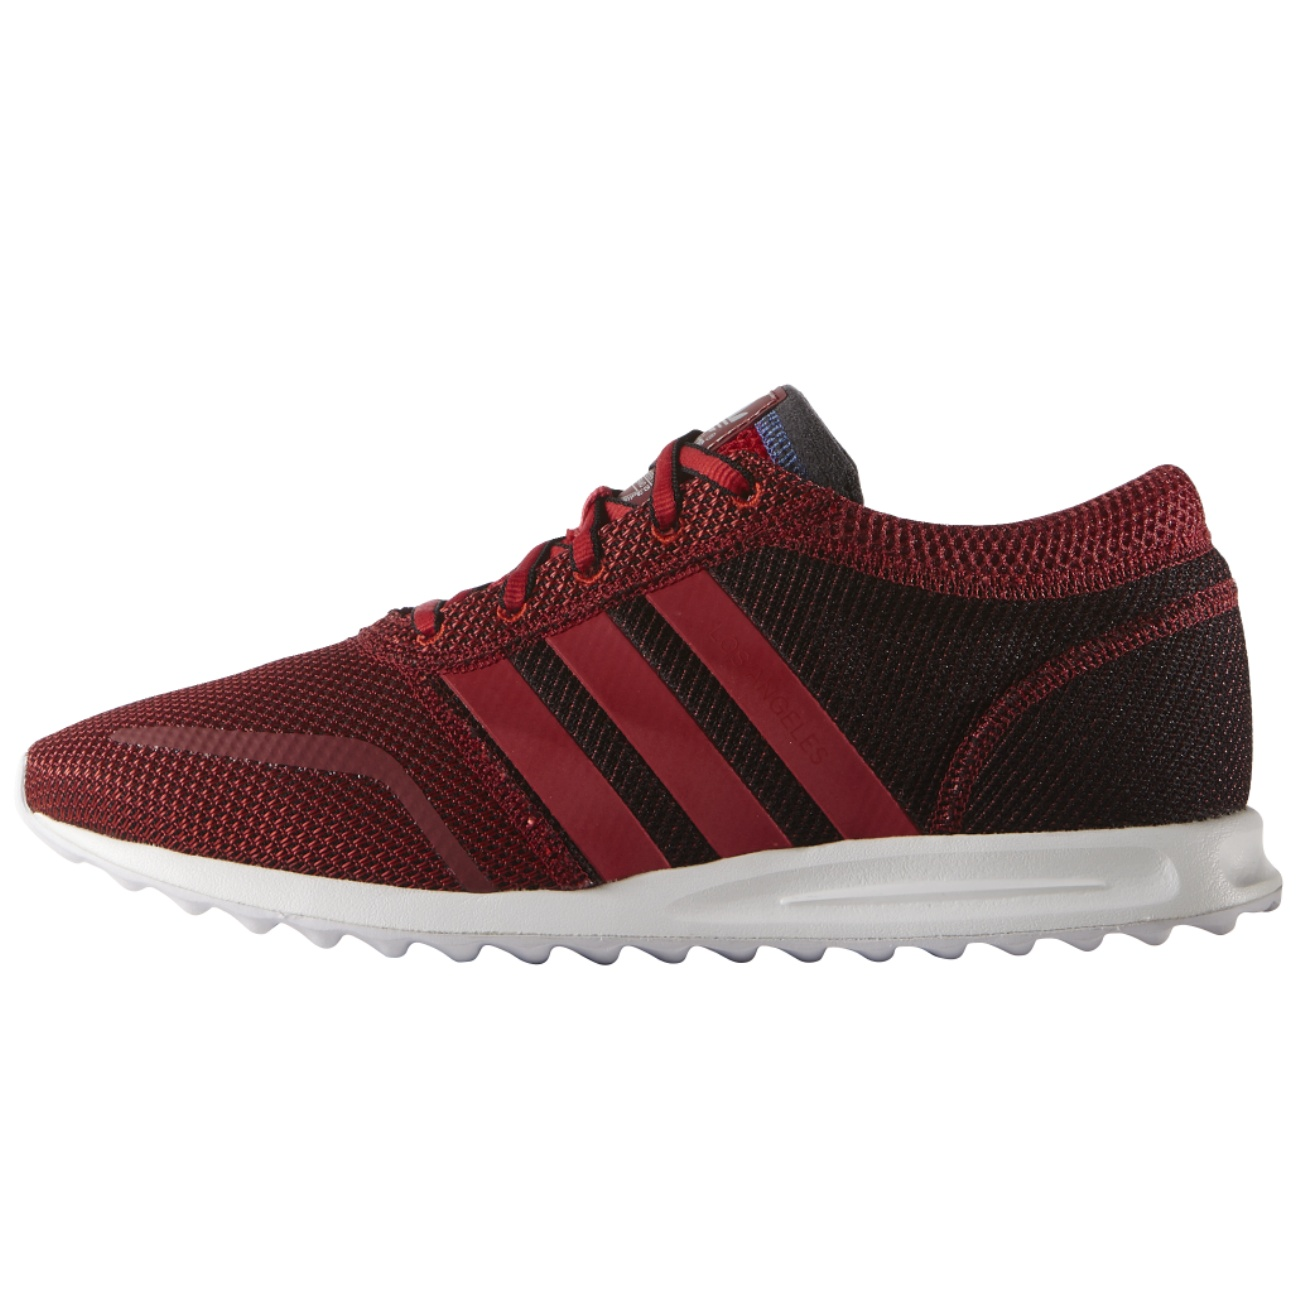 adidas los angeles schuhe turnschuhe sneaker herren damen af4233 scarlet rot ebay. Black Bedroom Furniture Sets. Home Design Ideas